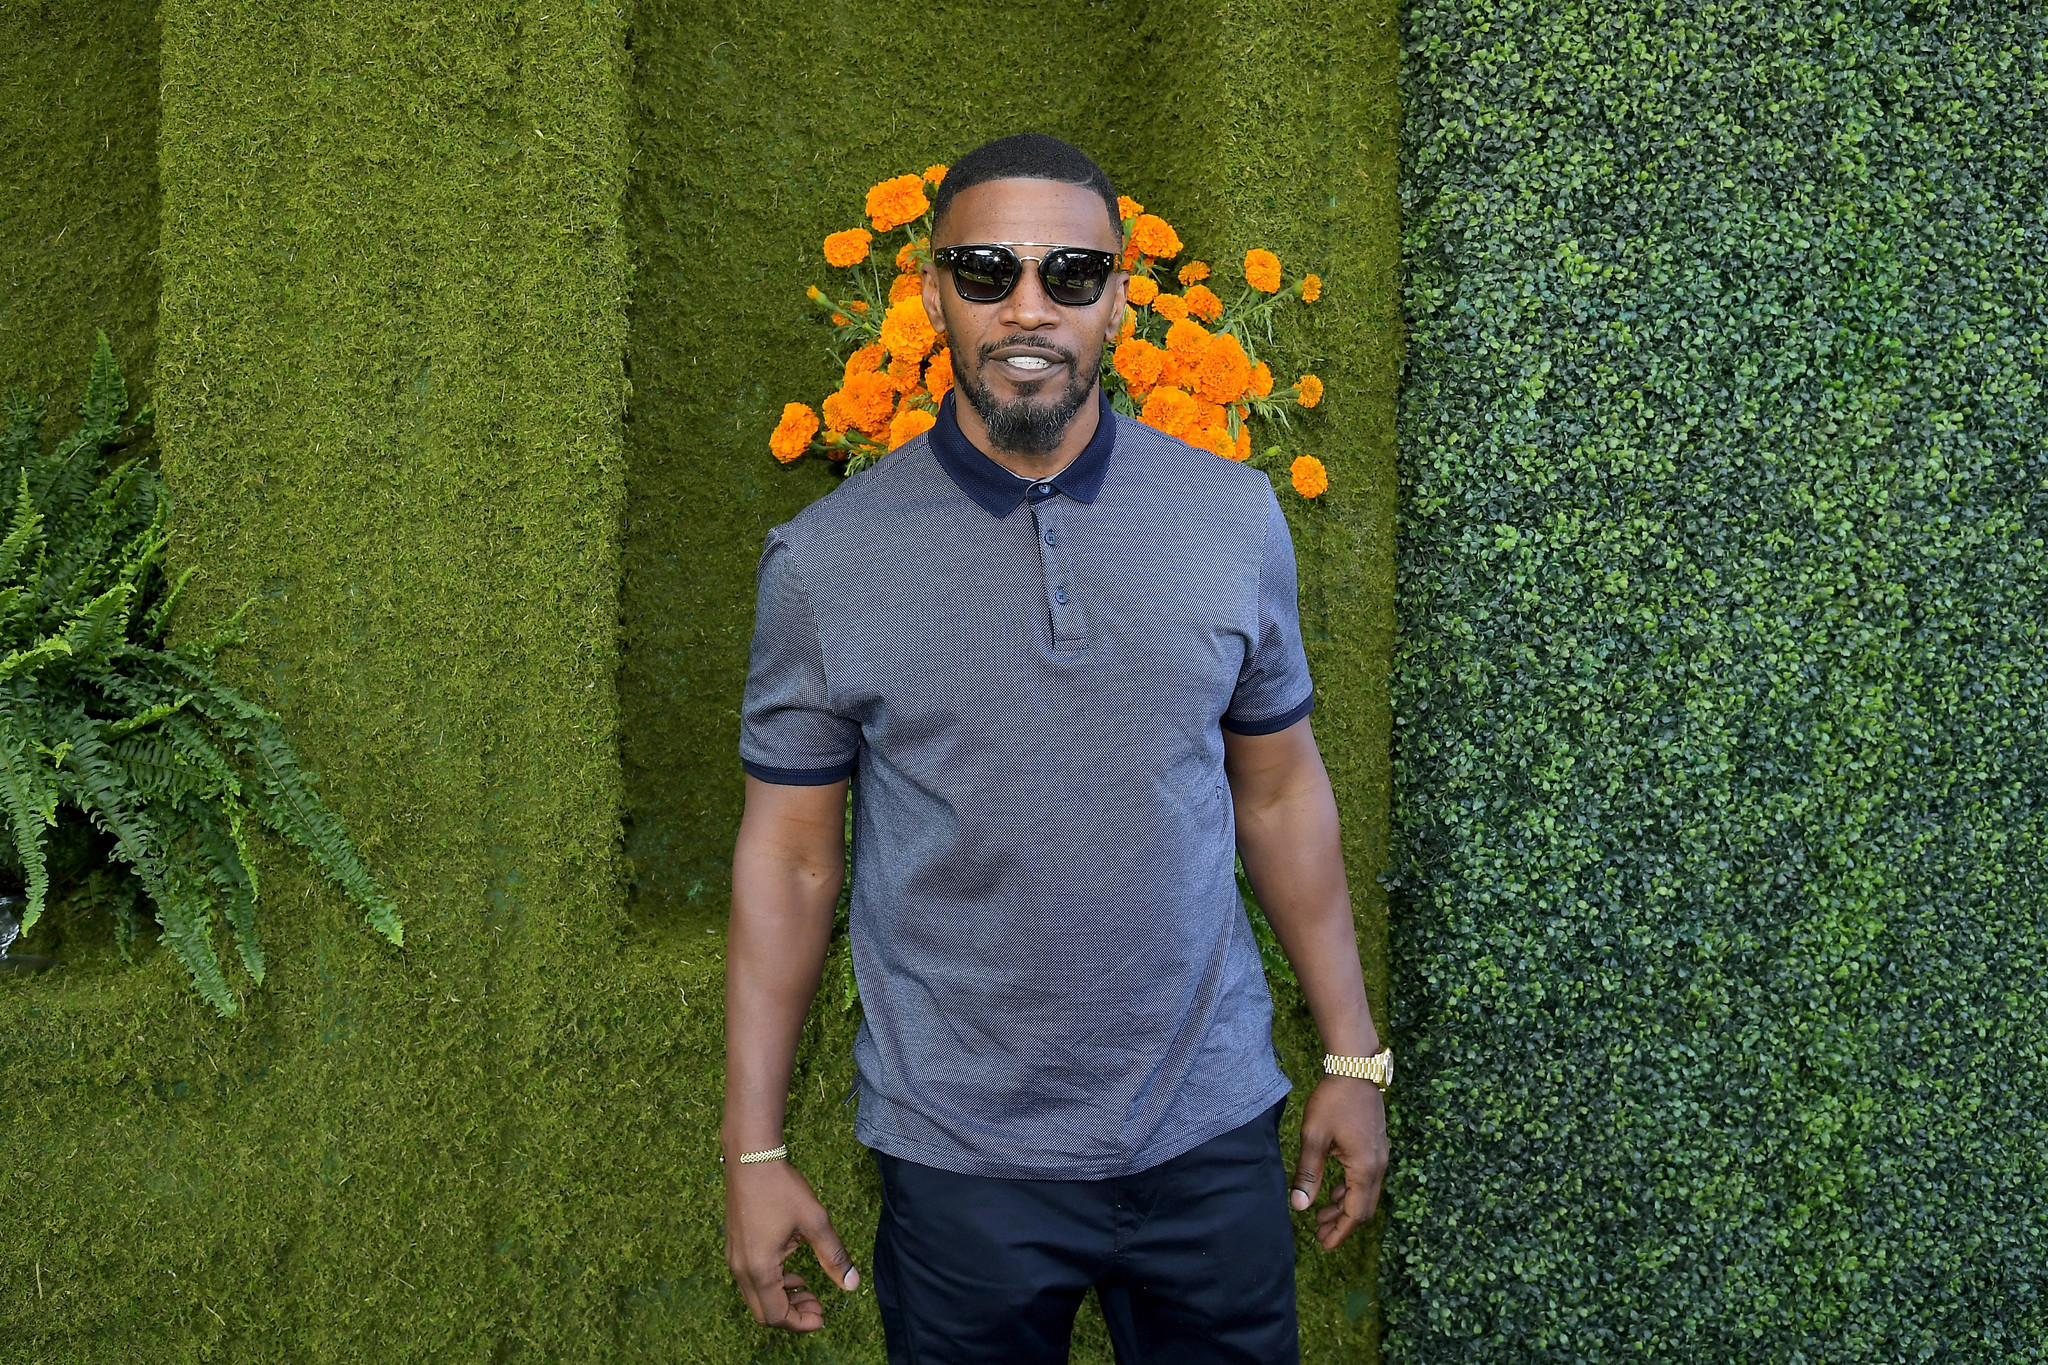 Jamie Foxx at the eighth annual Veuve Clicquot Polo Classic.